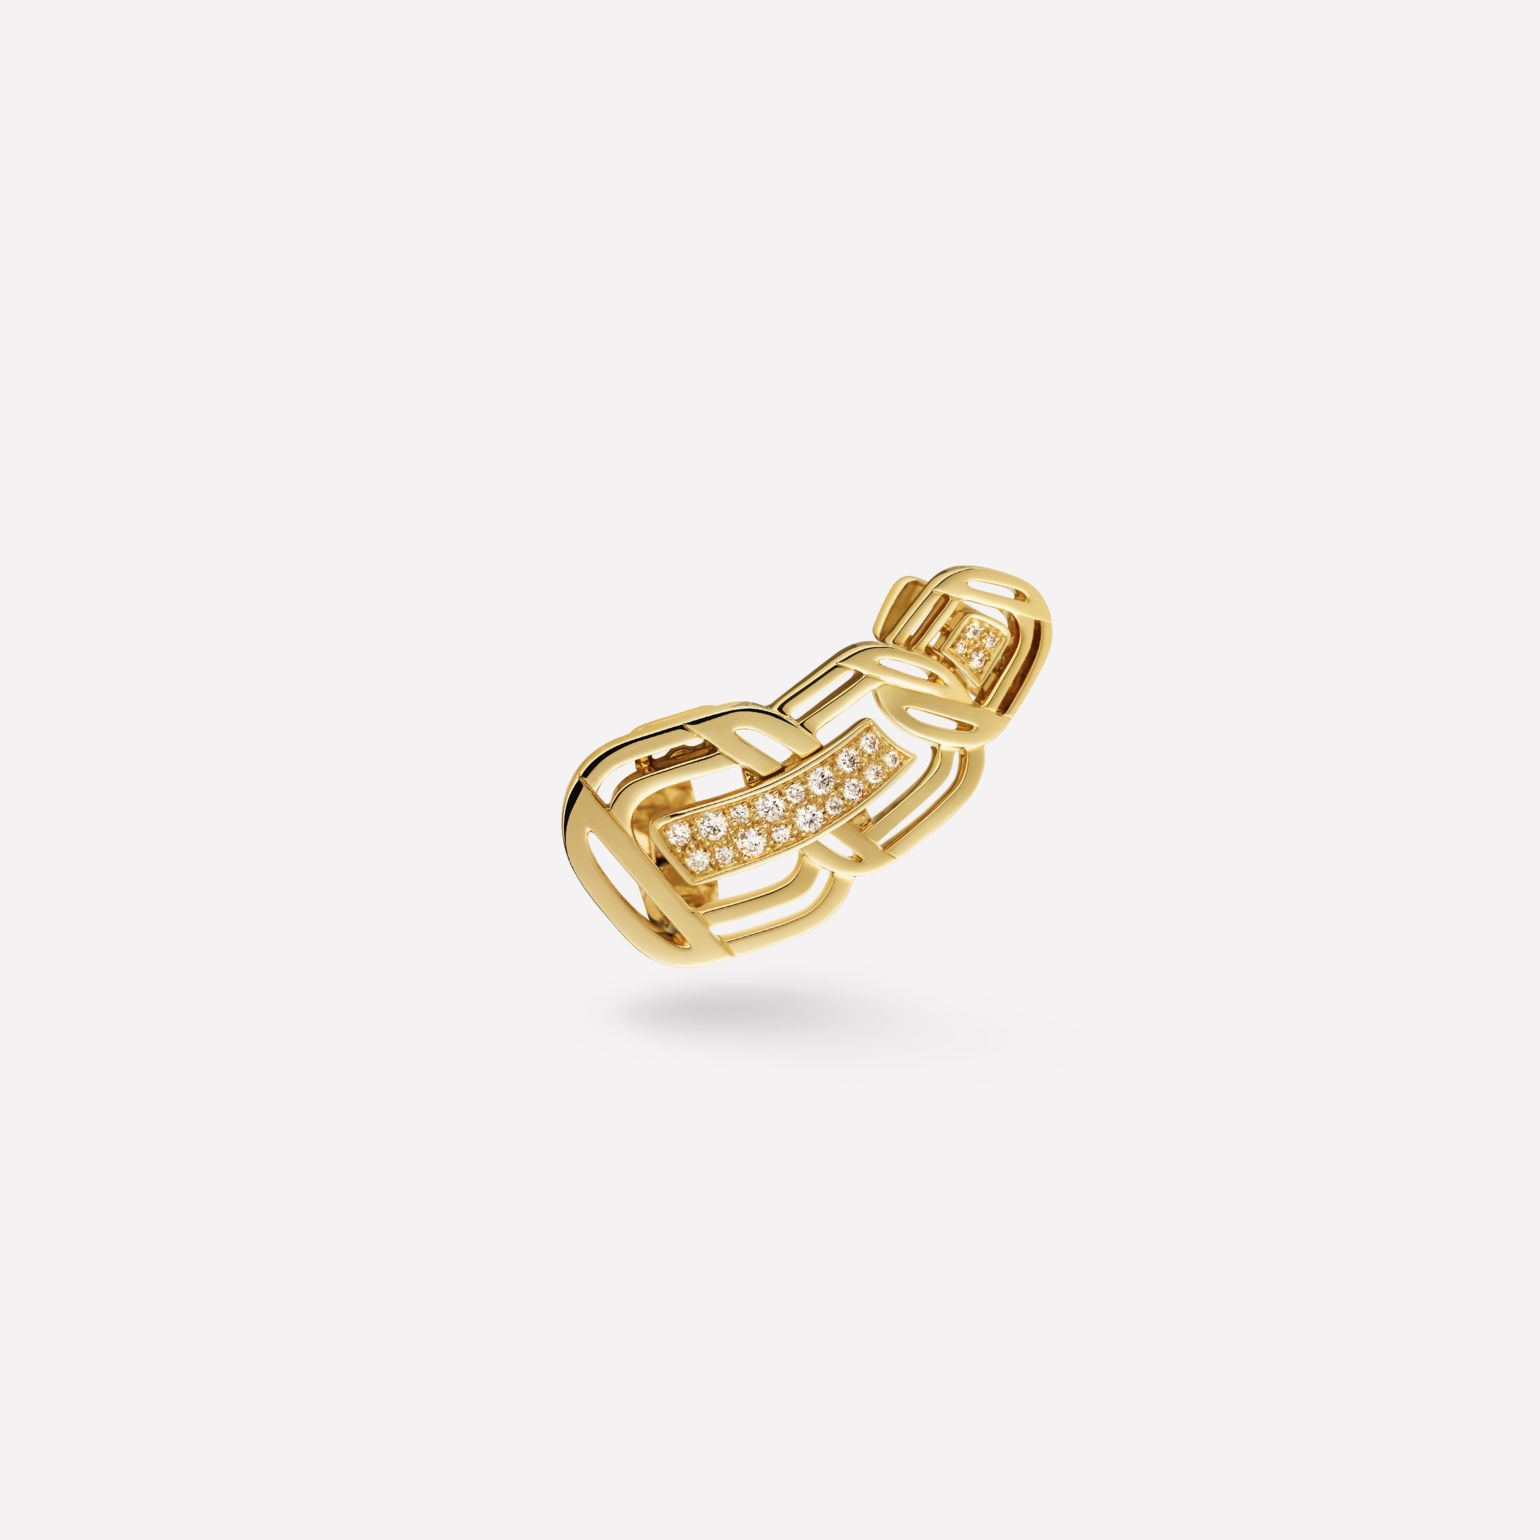 Boucle d'oreille My Golden Link Or jaune 18 carats et diamants